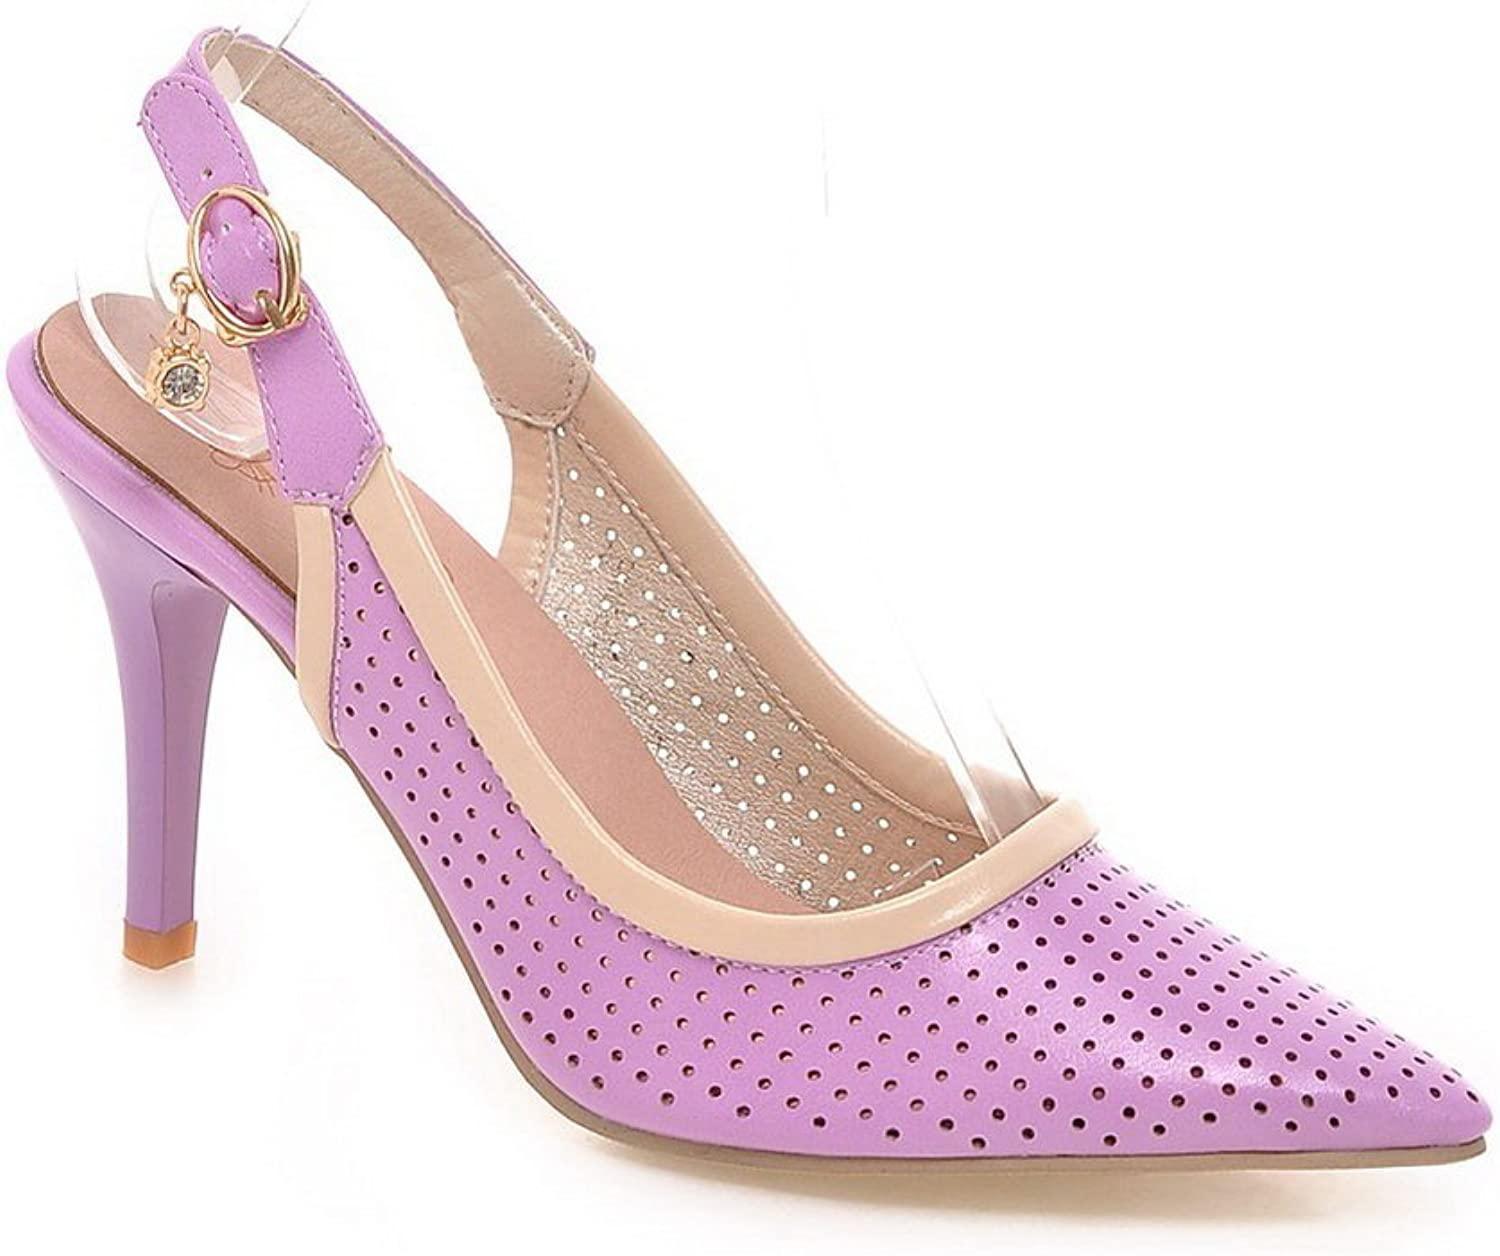 1TO9 Ladies Studded Rhinestones Metal Buckles Outdoor Purple Polyurethane Pumps-shoes - 7.5 B(M) US